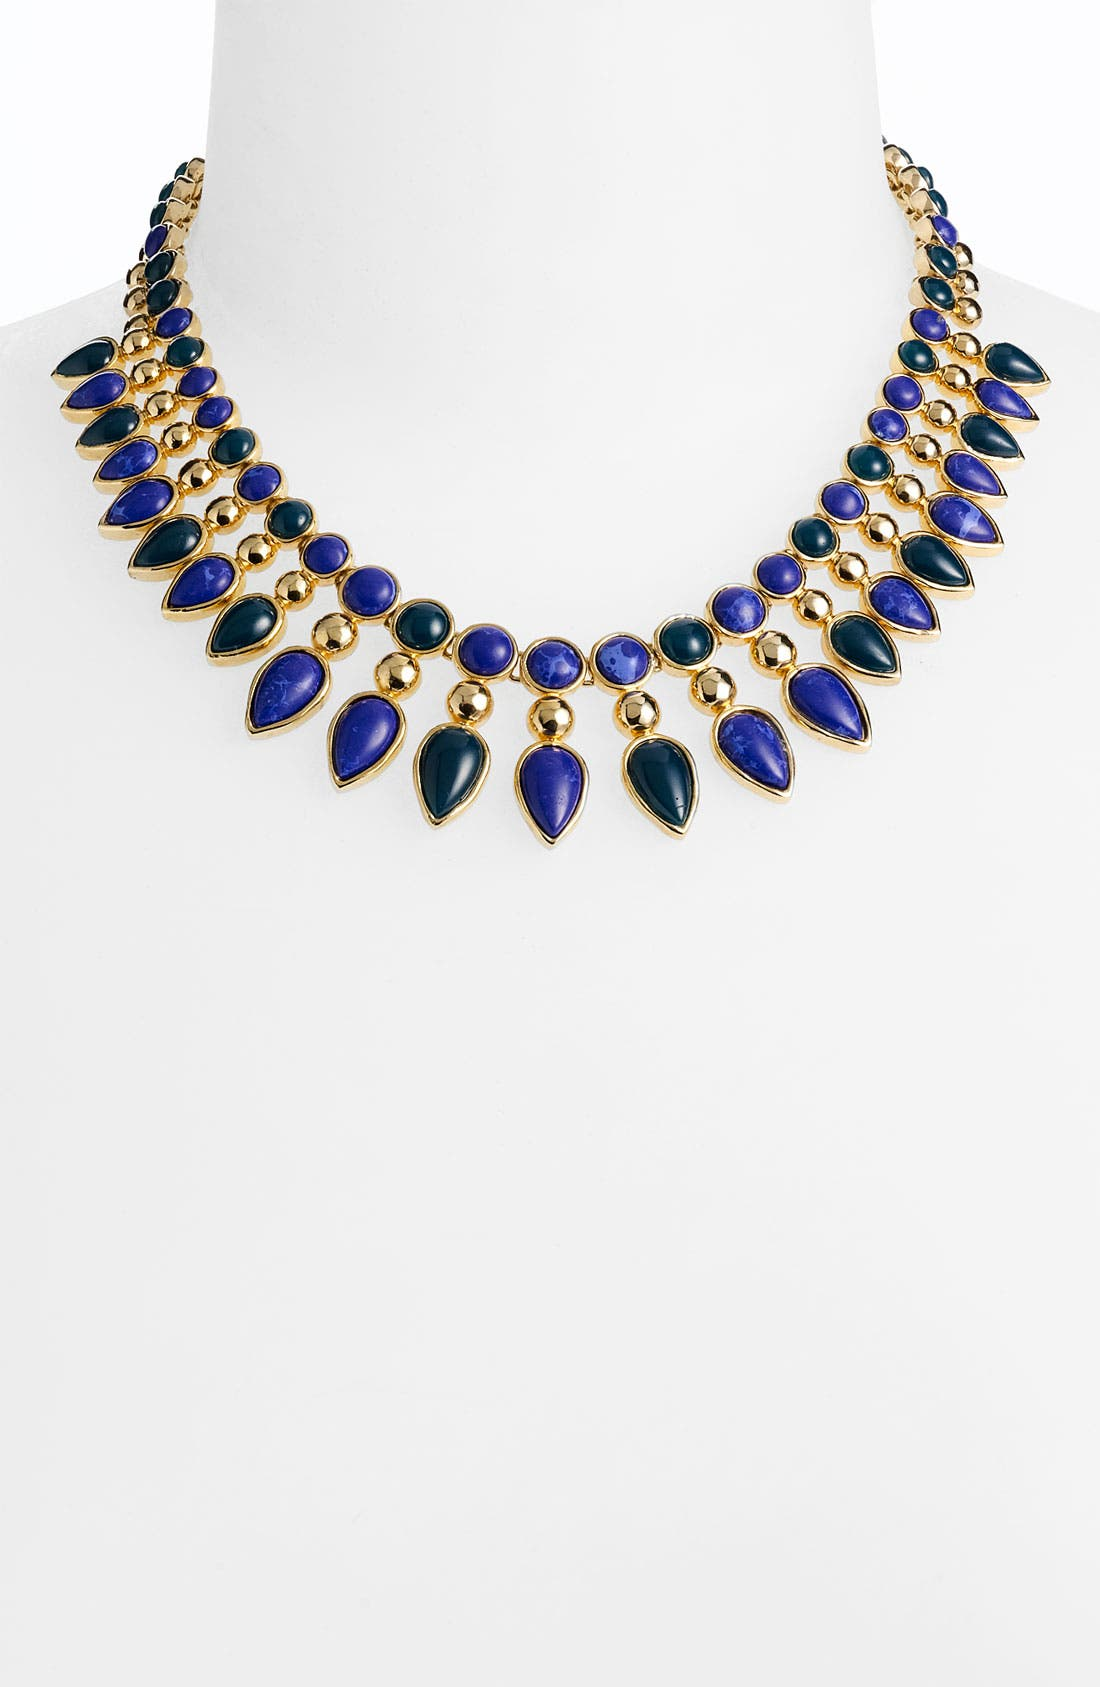 NORDSTROM 'Lapis of Luxury - Cleopatra' Necklace, Main, color, 400